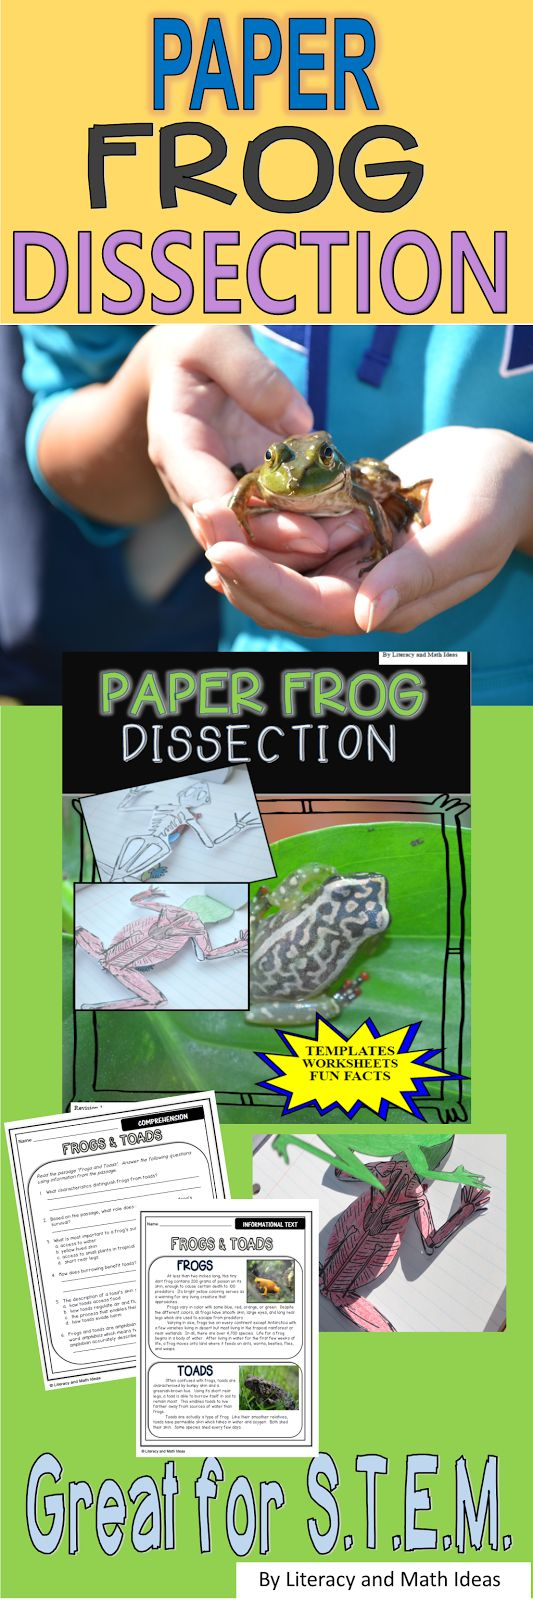 best 25 facts about frogs ideas on pinterest fun facts about